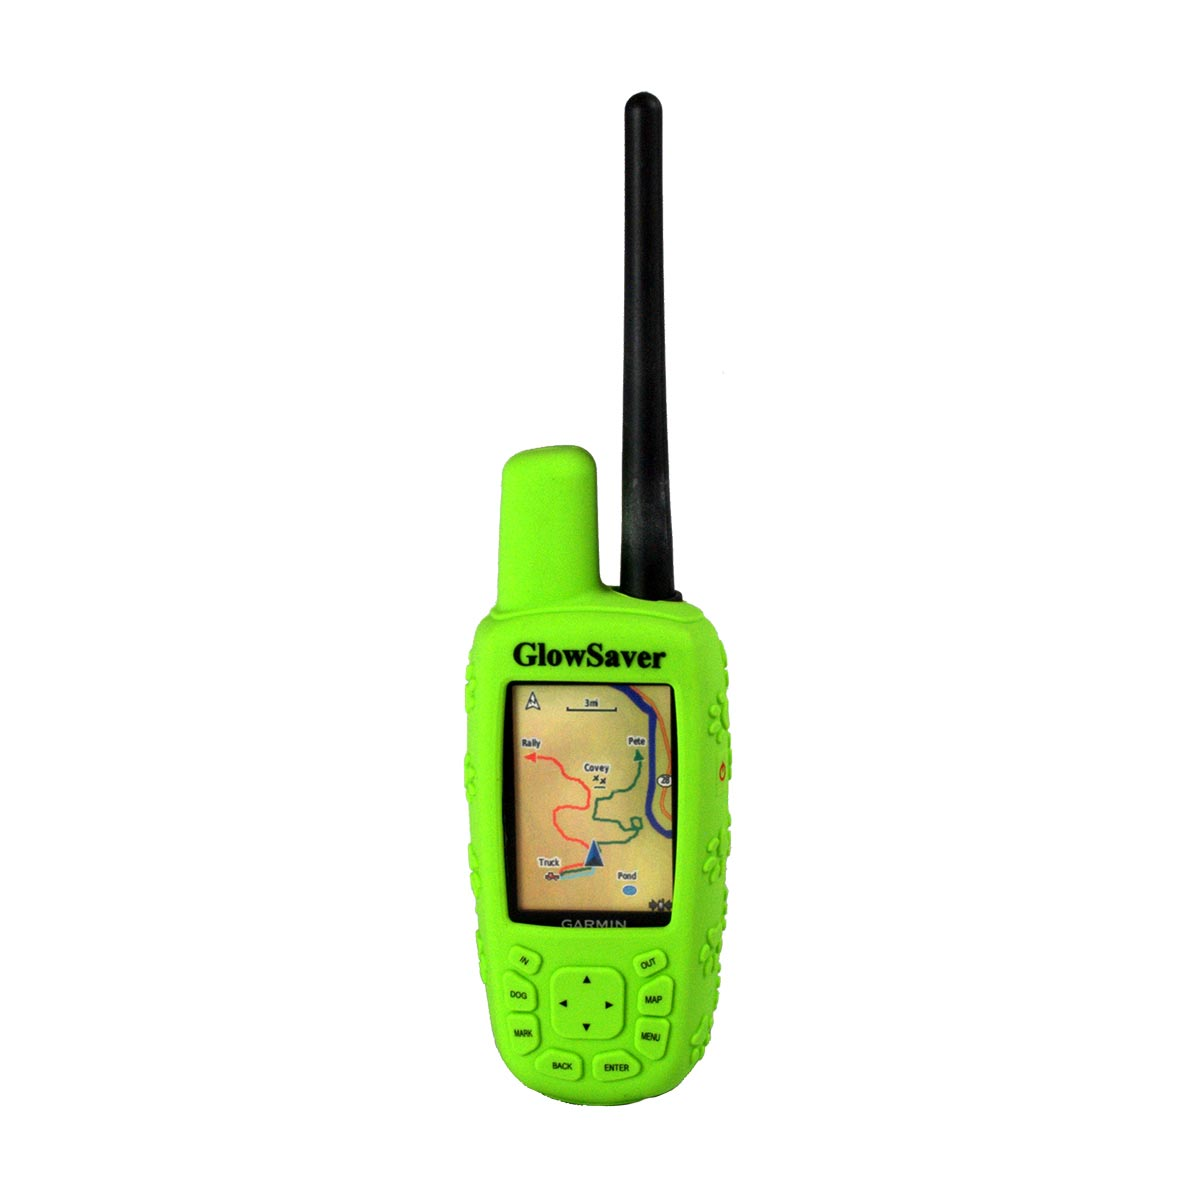 The Buzzard's Roost GlowSaver Case for Astro with Screen Protectors Bright Green Dog GPS Tracking - London the Local